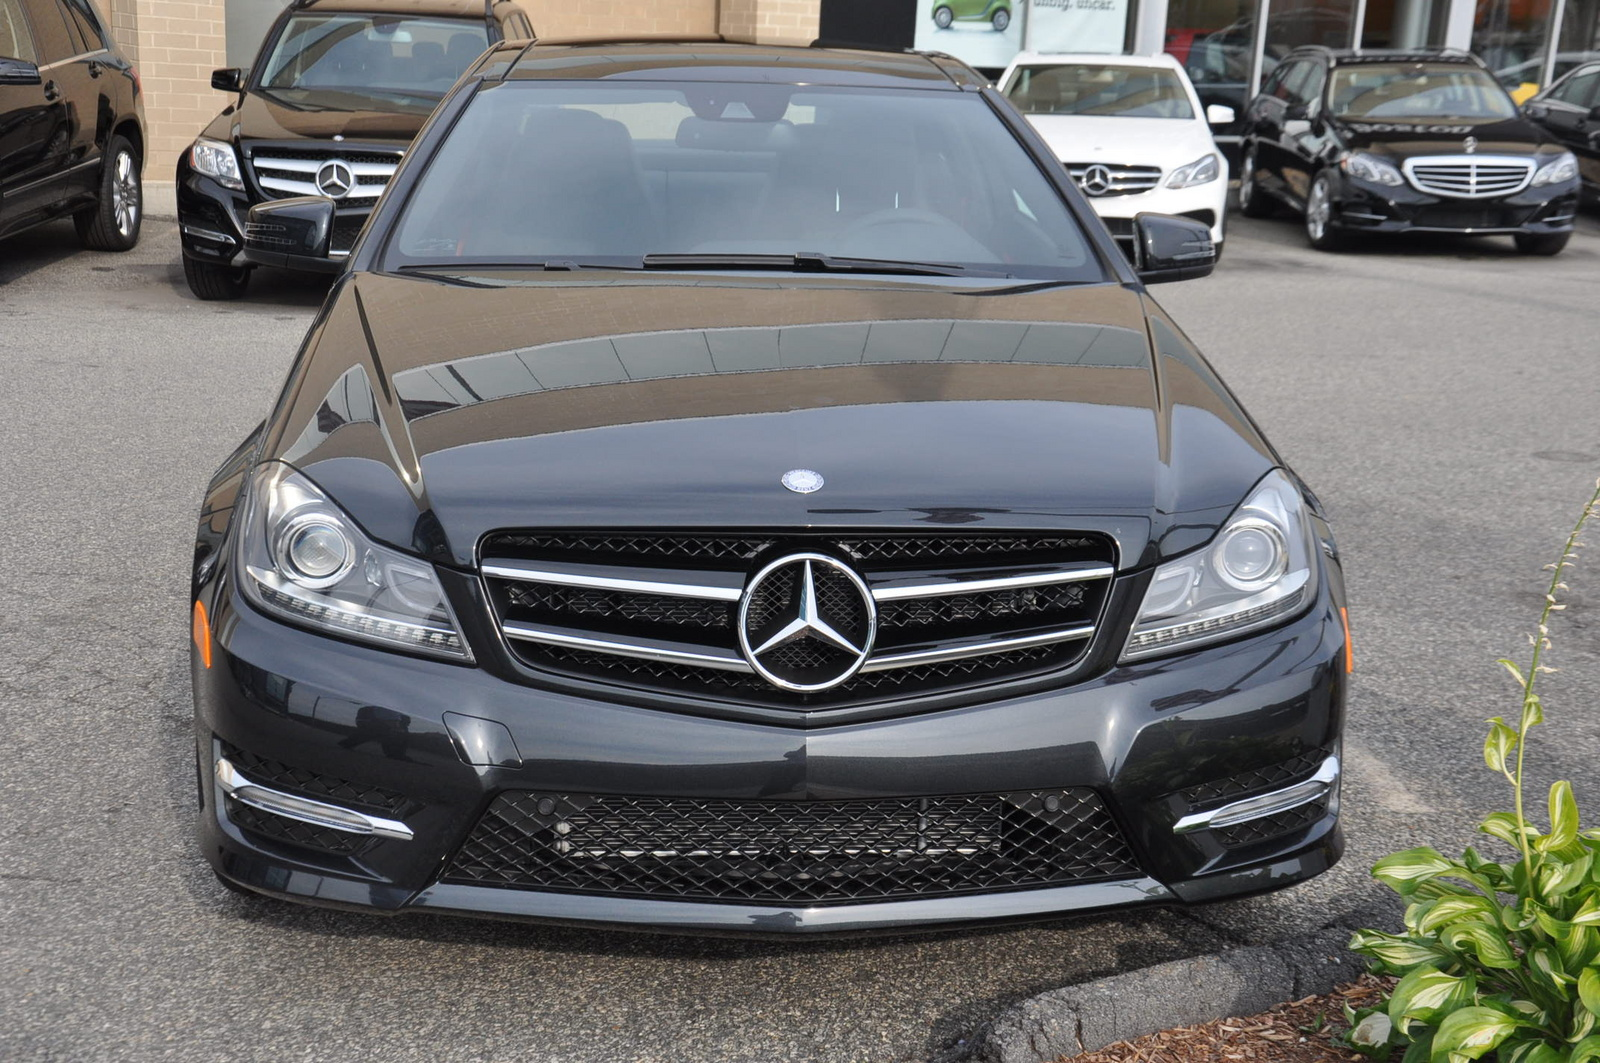 New 2014 2015 mercedes benz c class for sale cargurus for Mercedes benz for sale cargurus